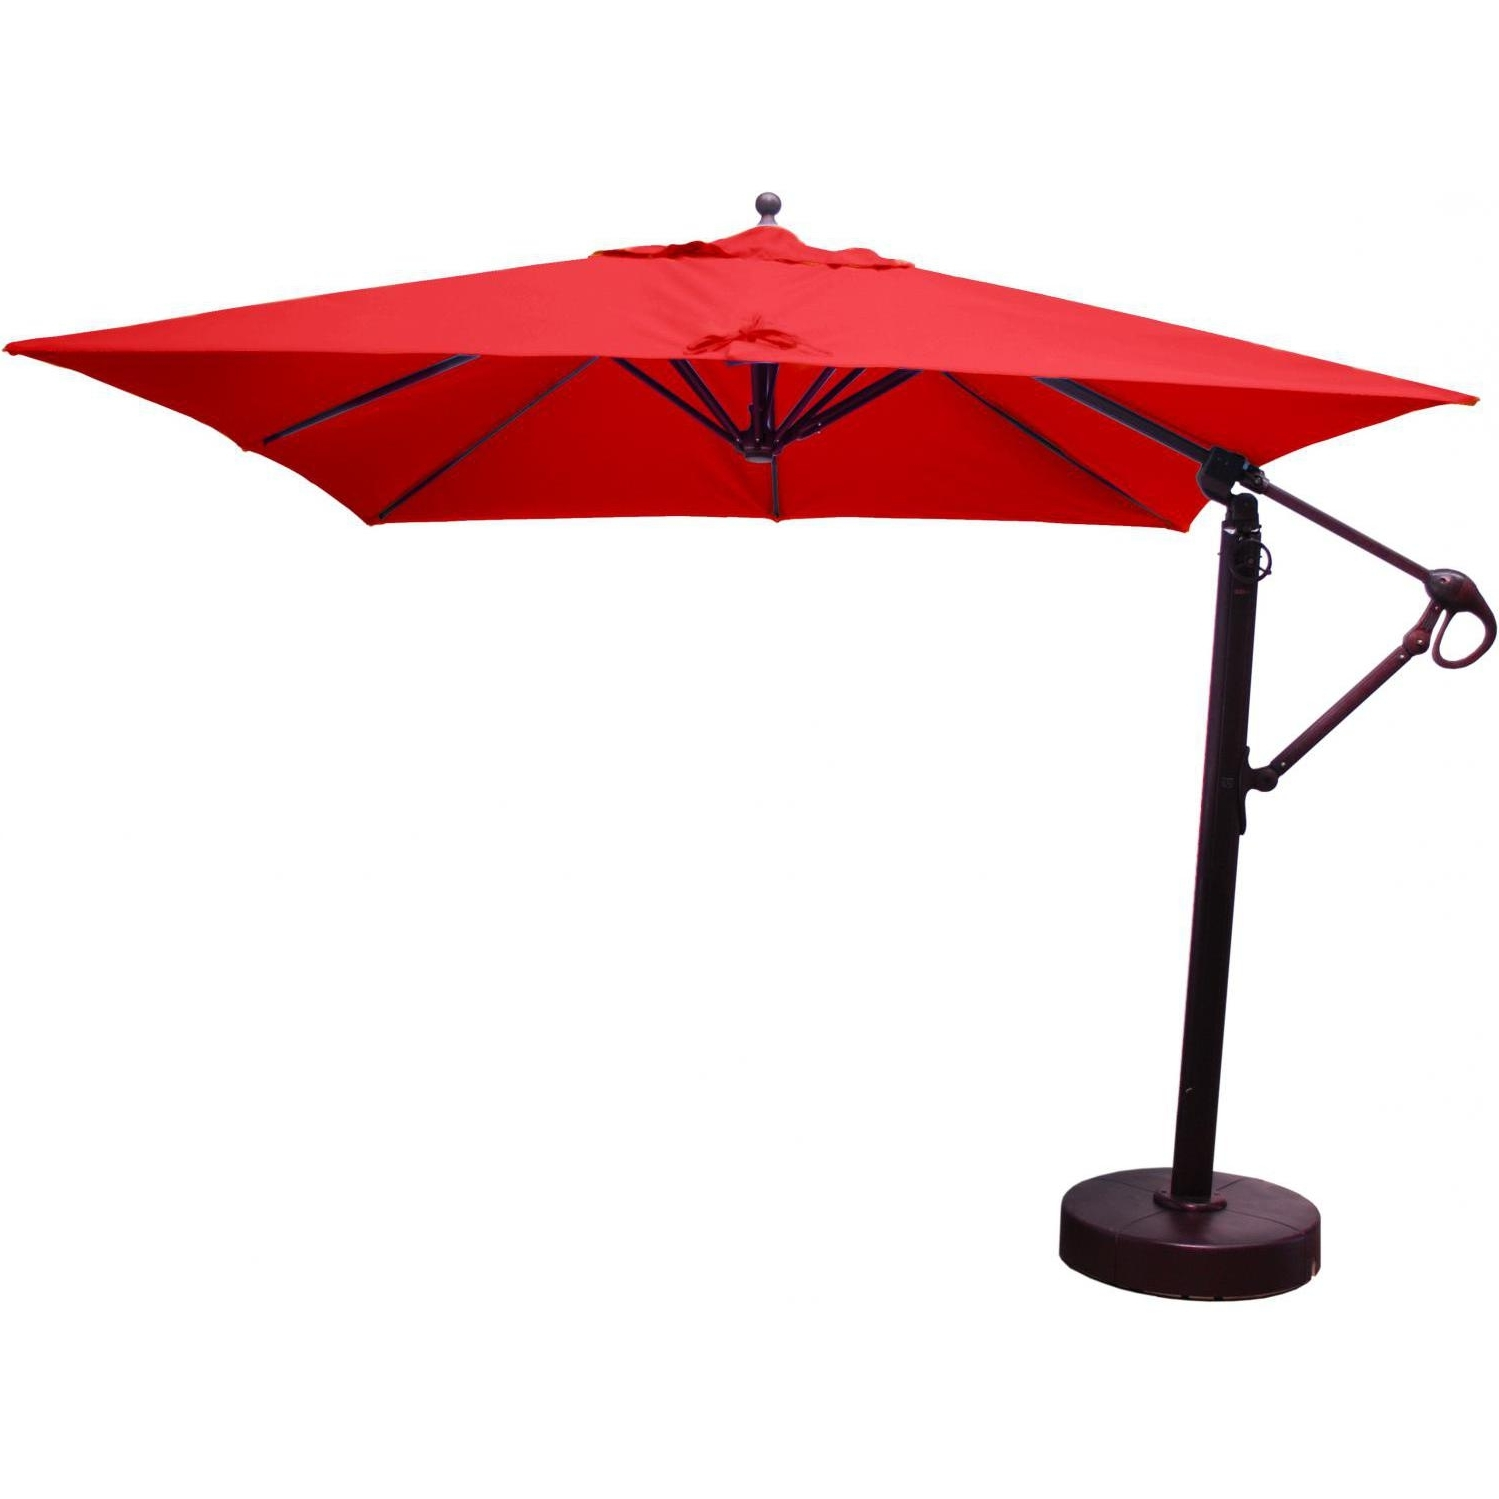 Most Recent Galtech 10 Ft Aluminum Square Cantilever Patio Umbrella With Easy With Square Patio Umbrellas (View 12 of 20)